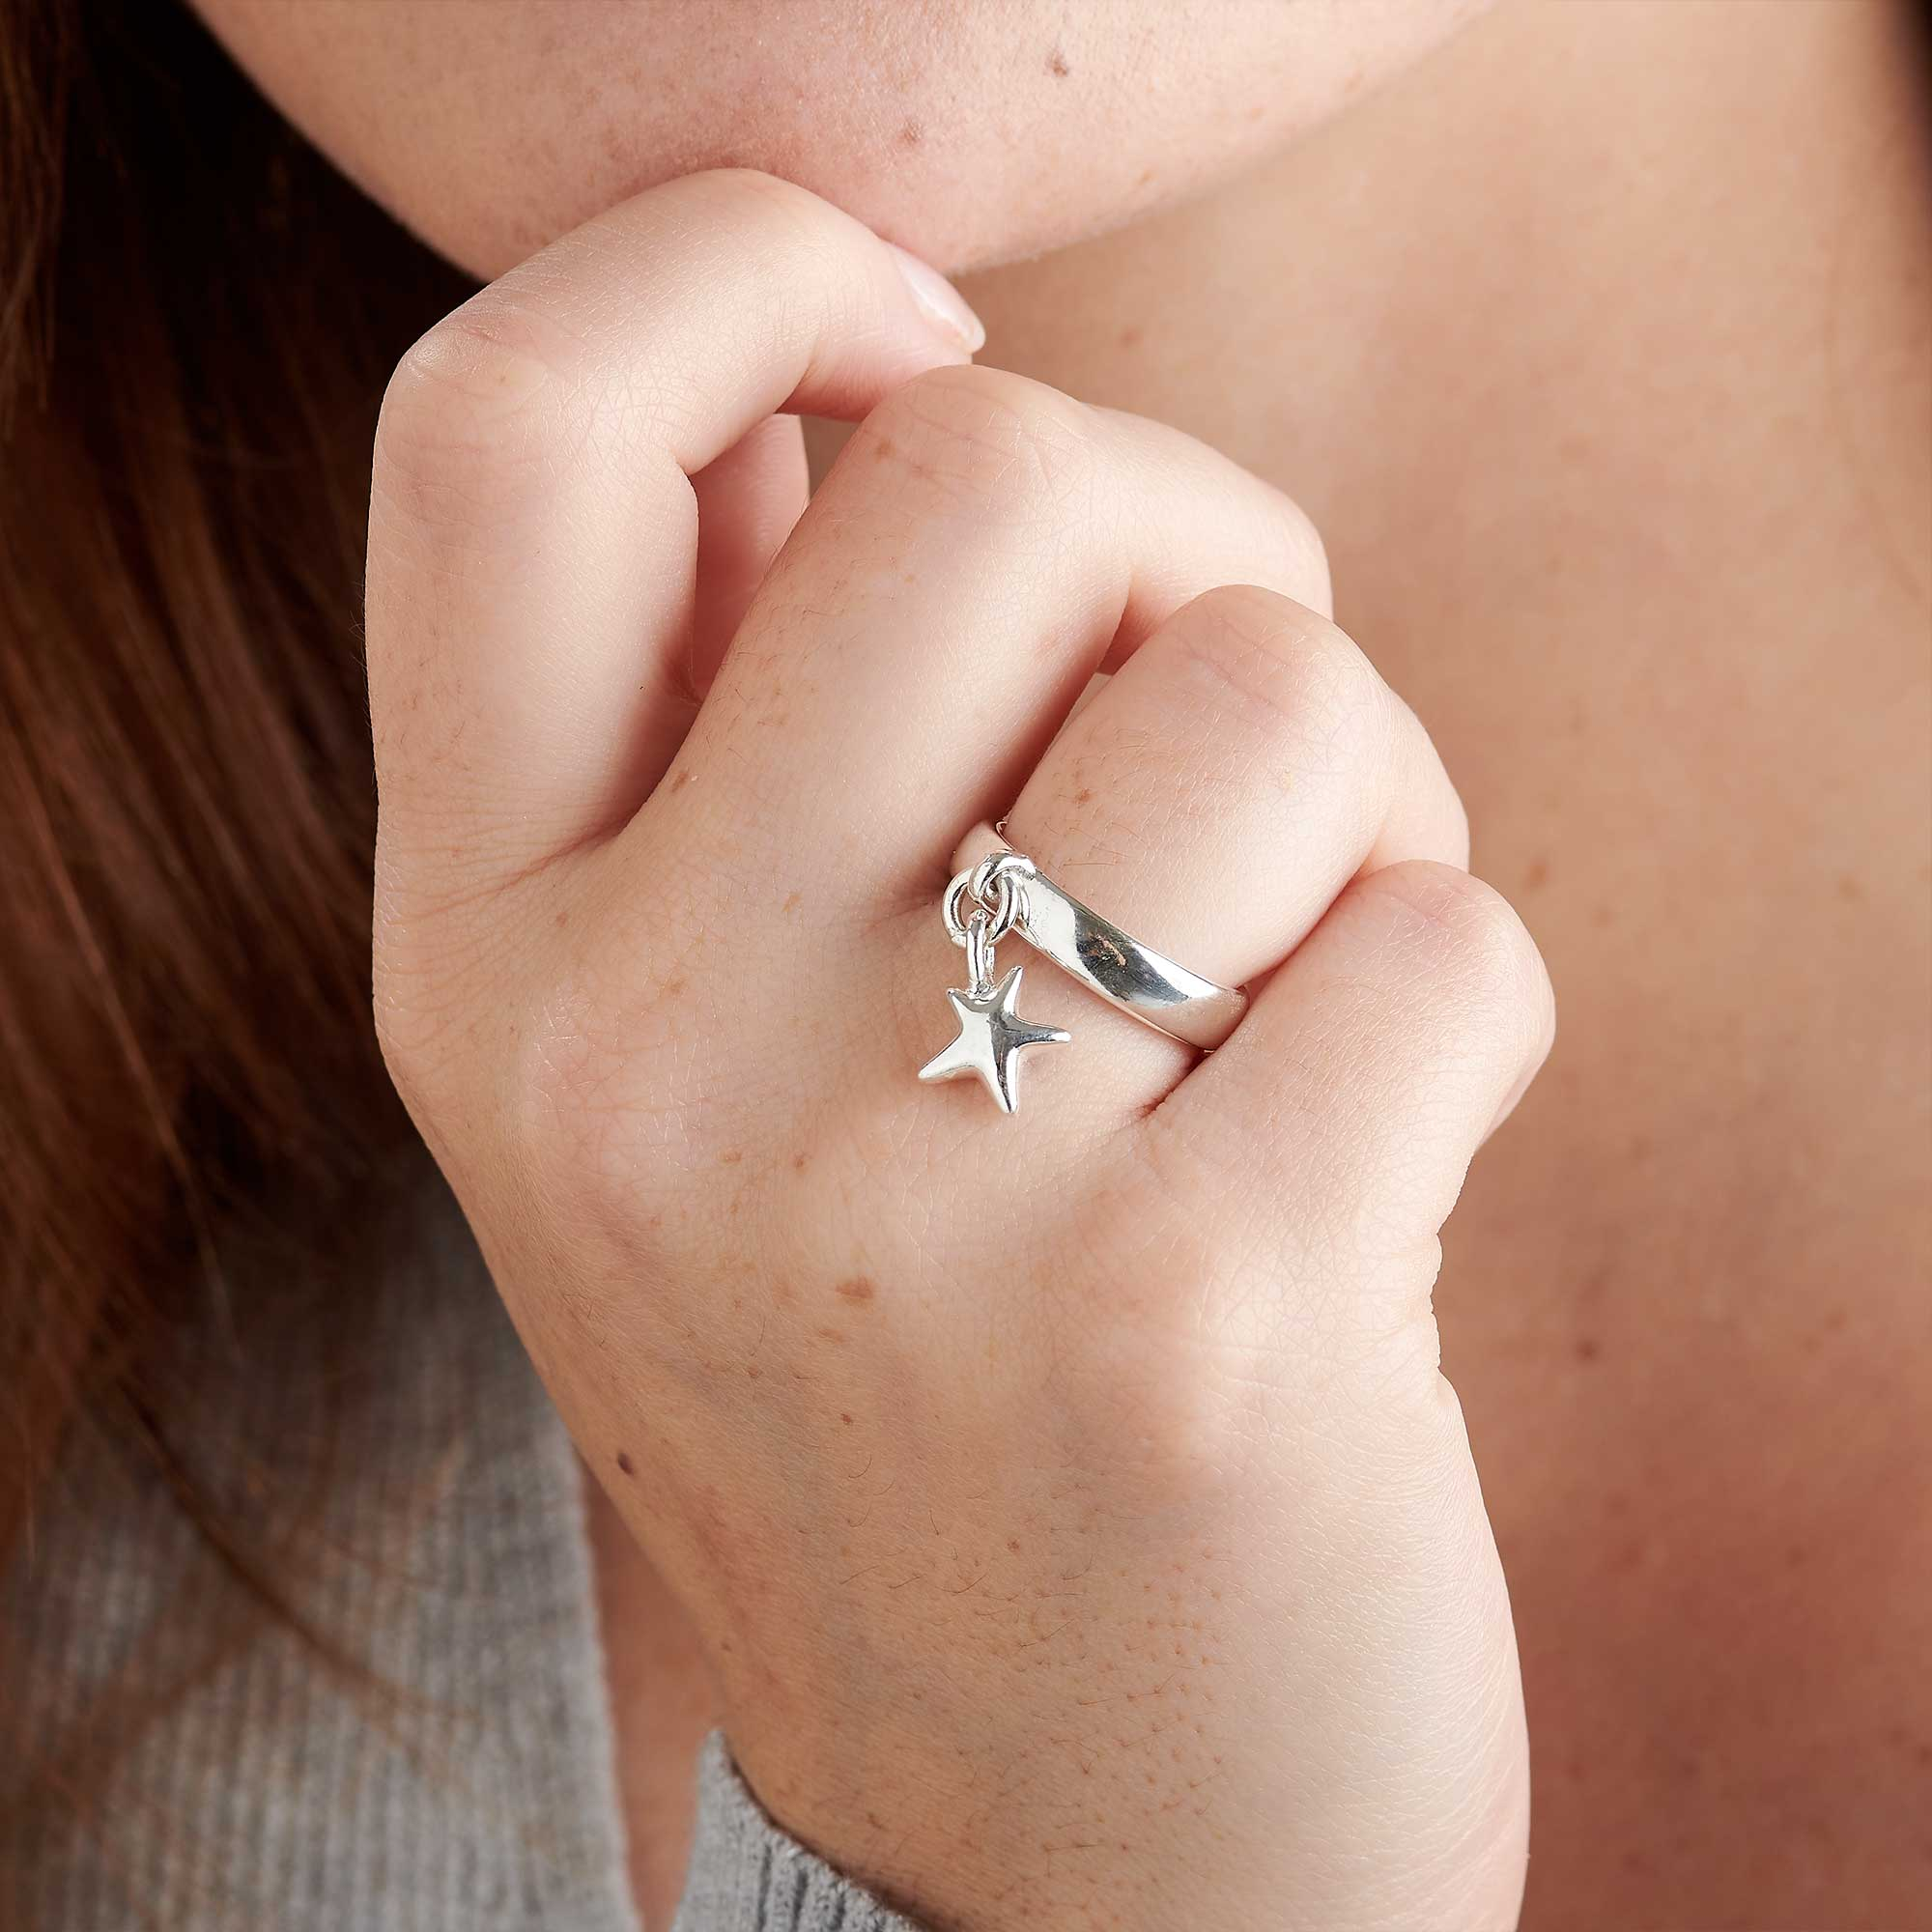 Stardust silver star charm ring unusual womens jewellery UK